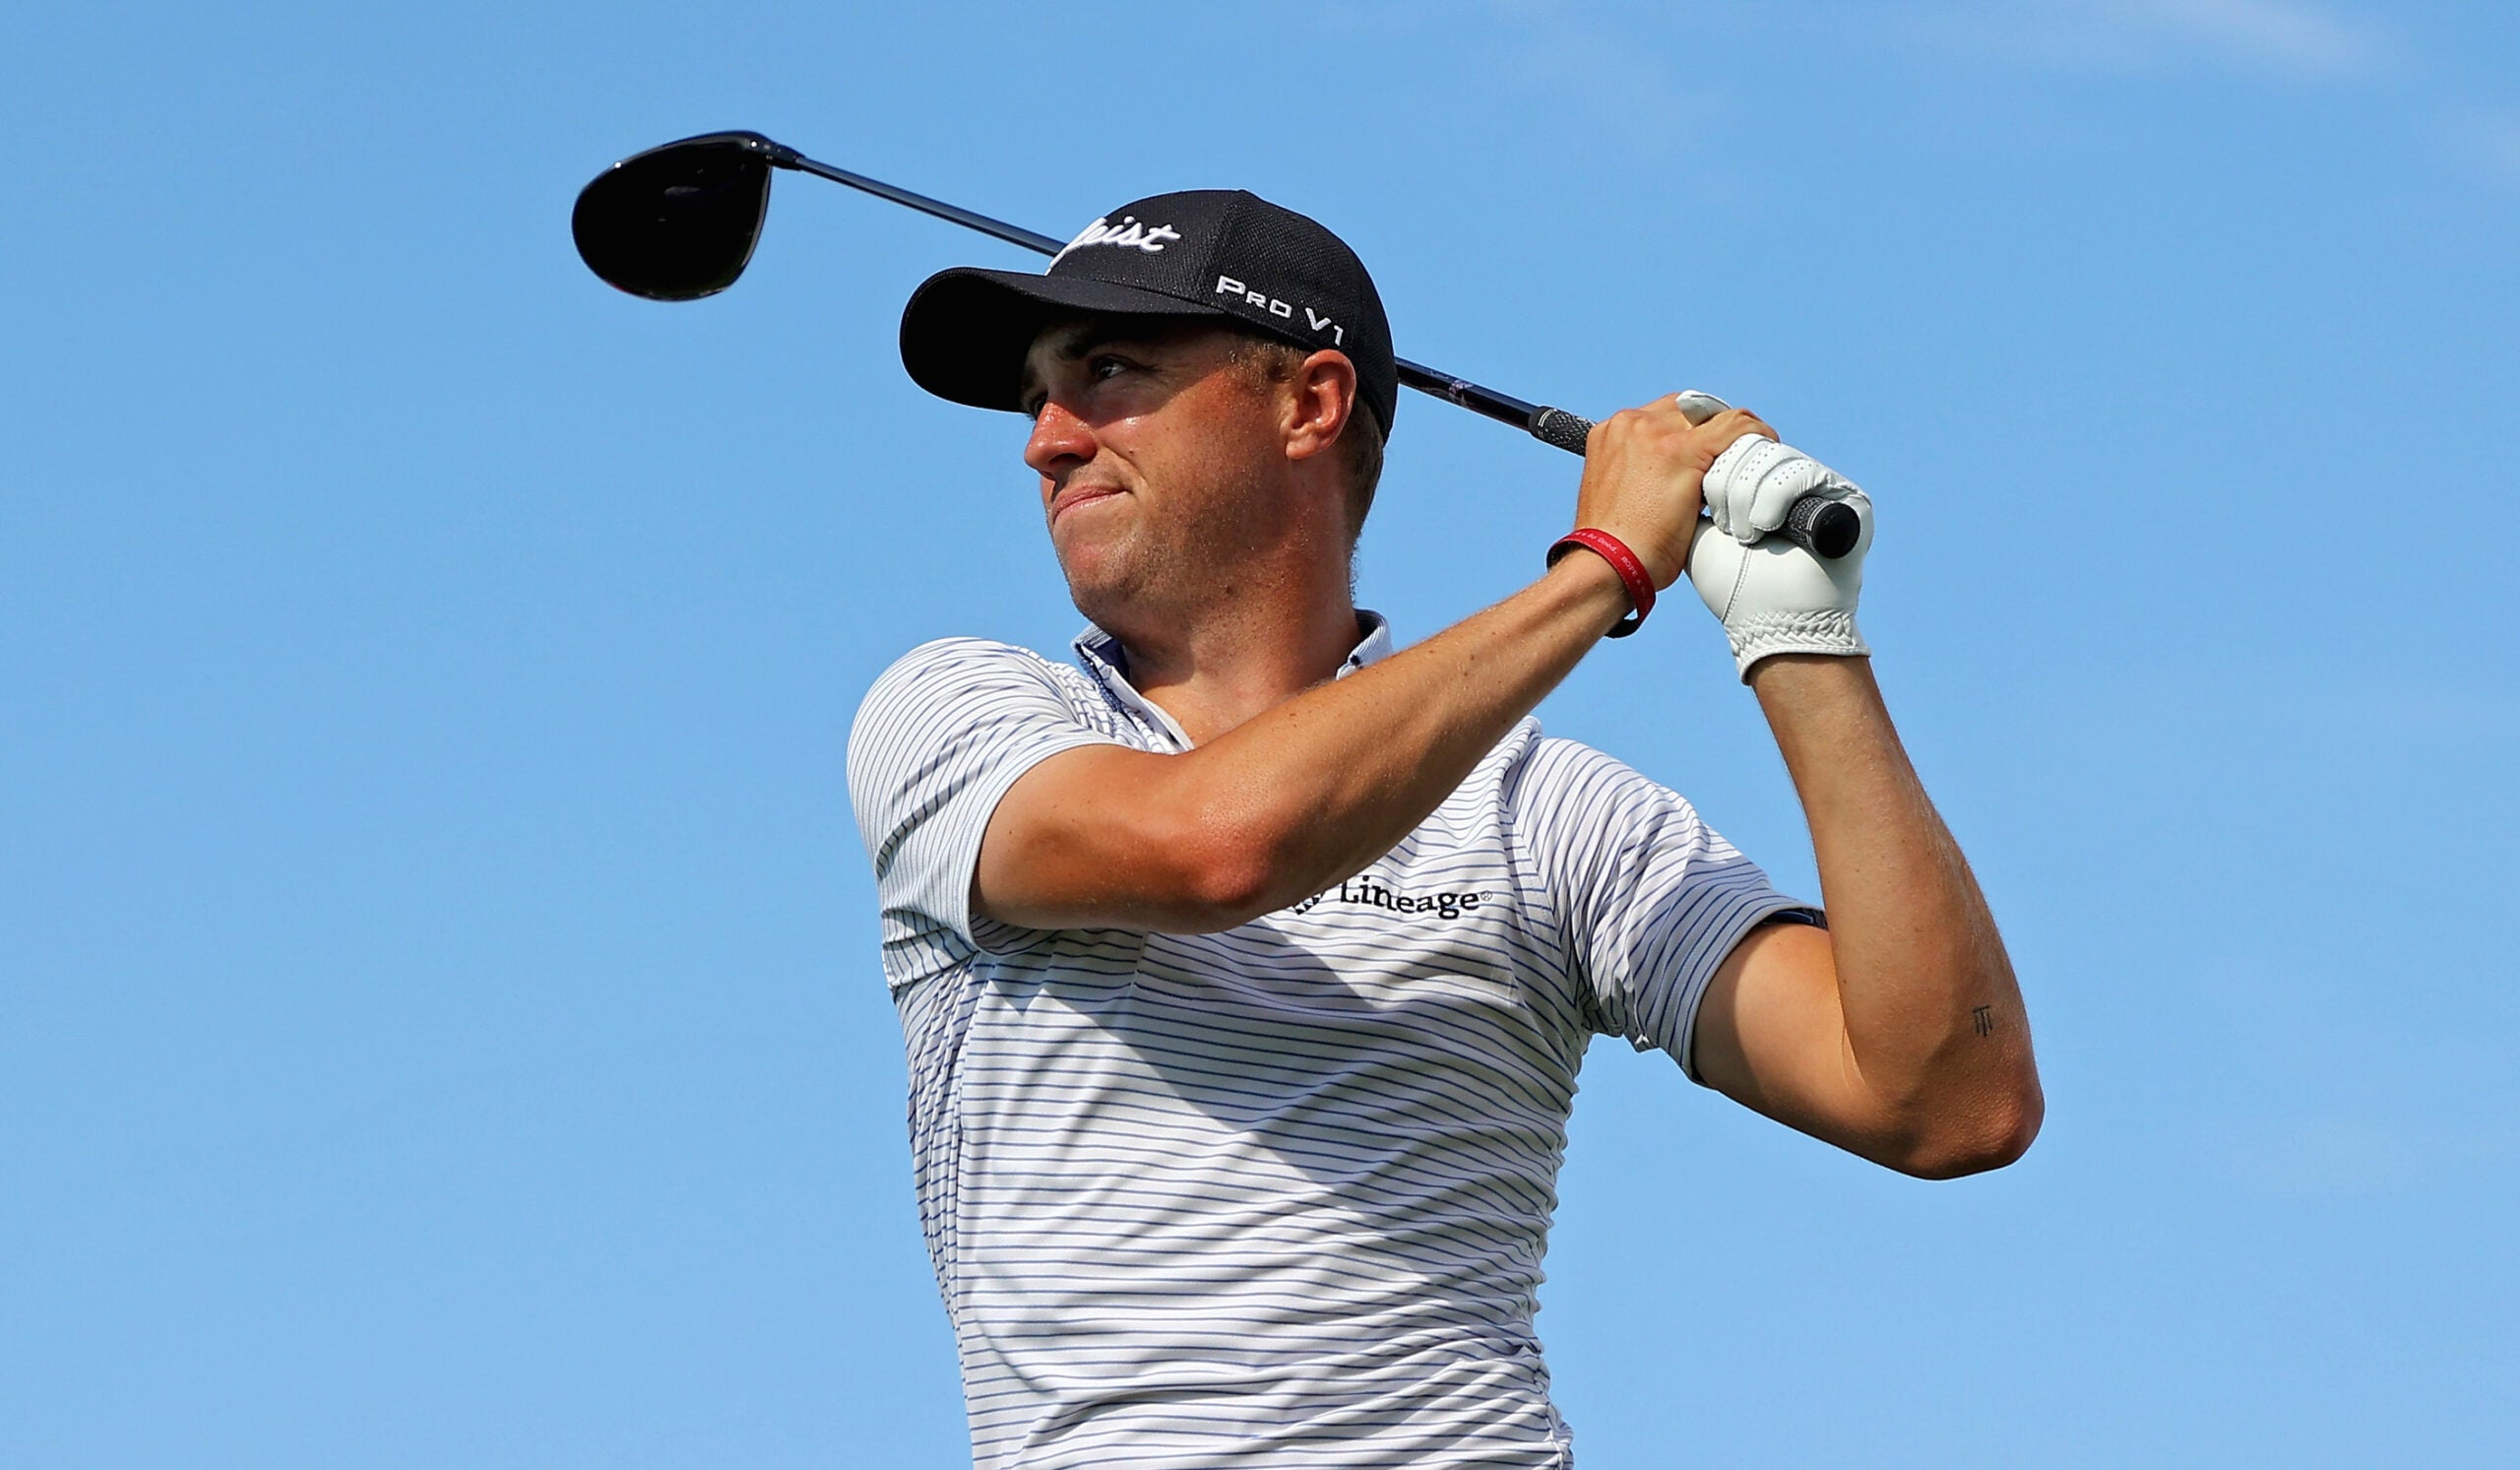 Justin Thomas reacts to the new 48-inch driver ban by the PGA Tour.